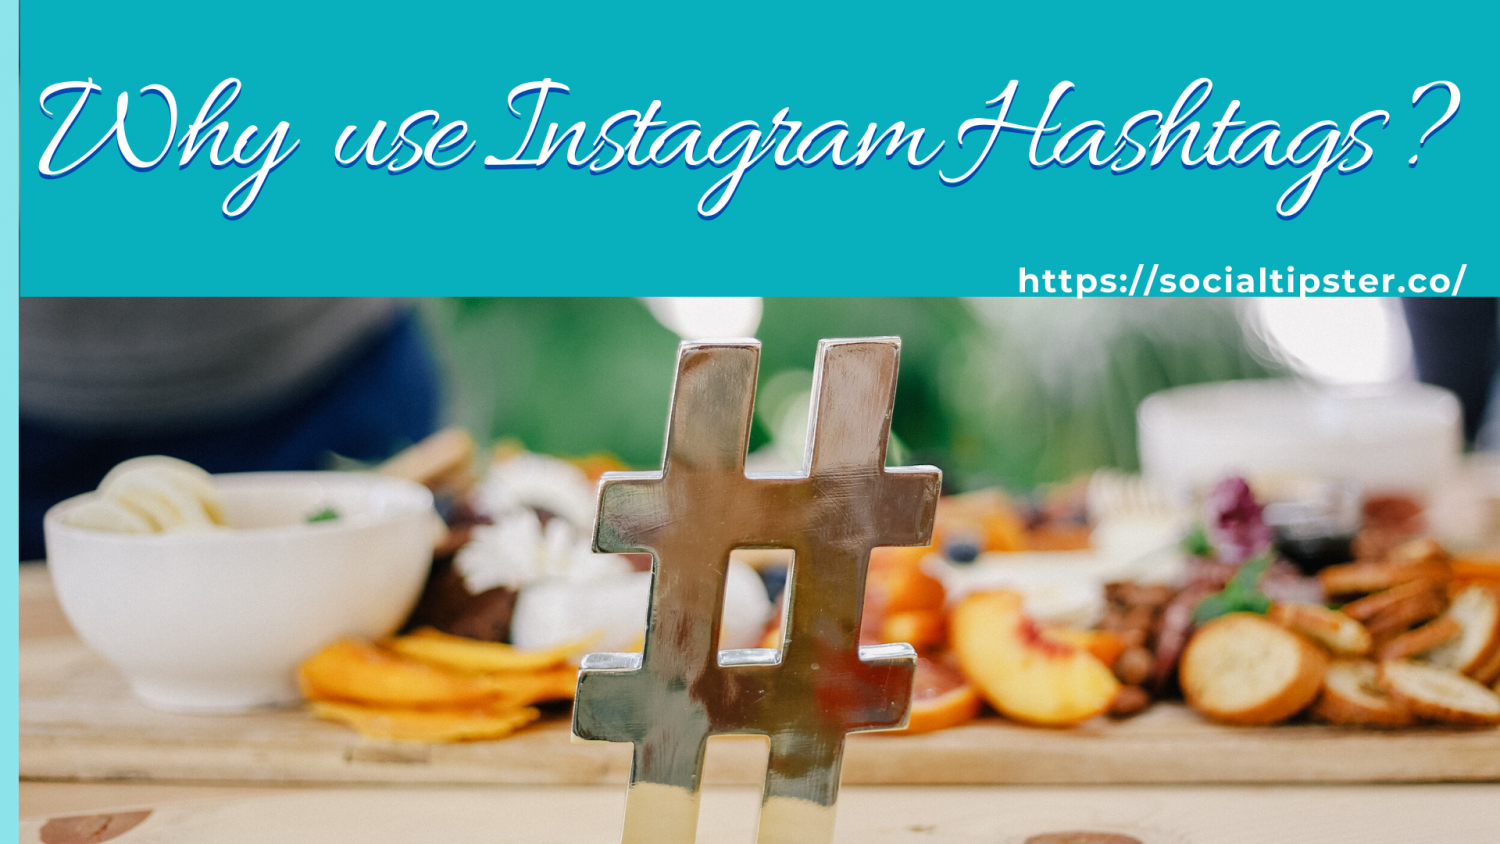 Instagram hashtags not working.